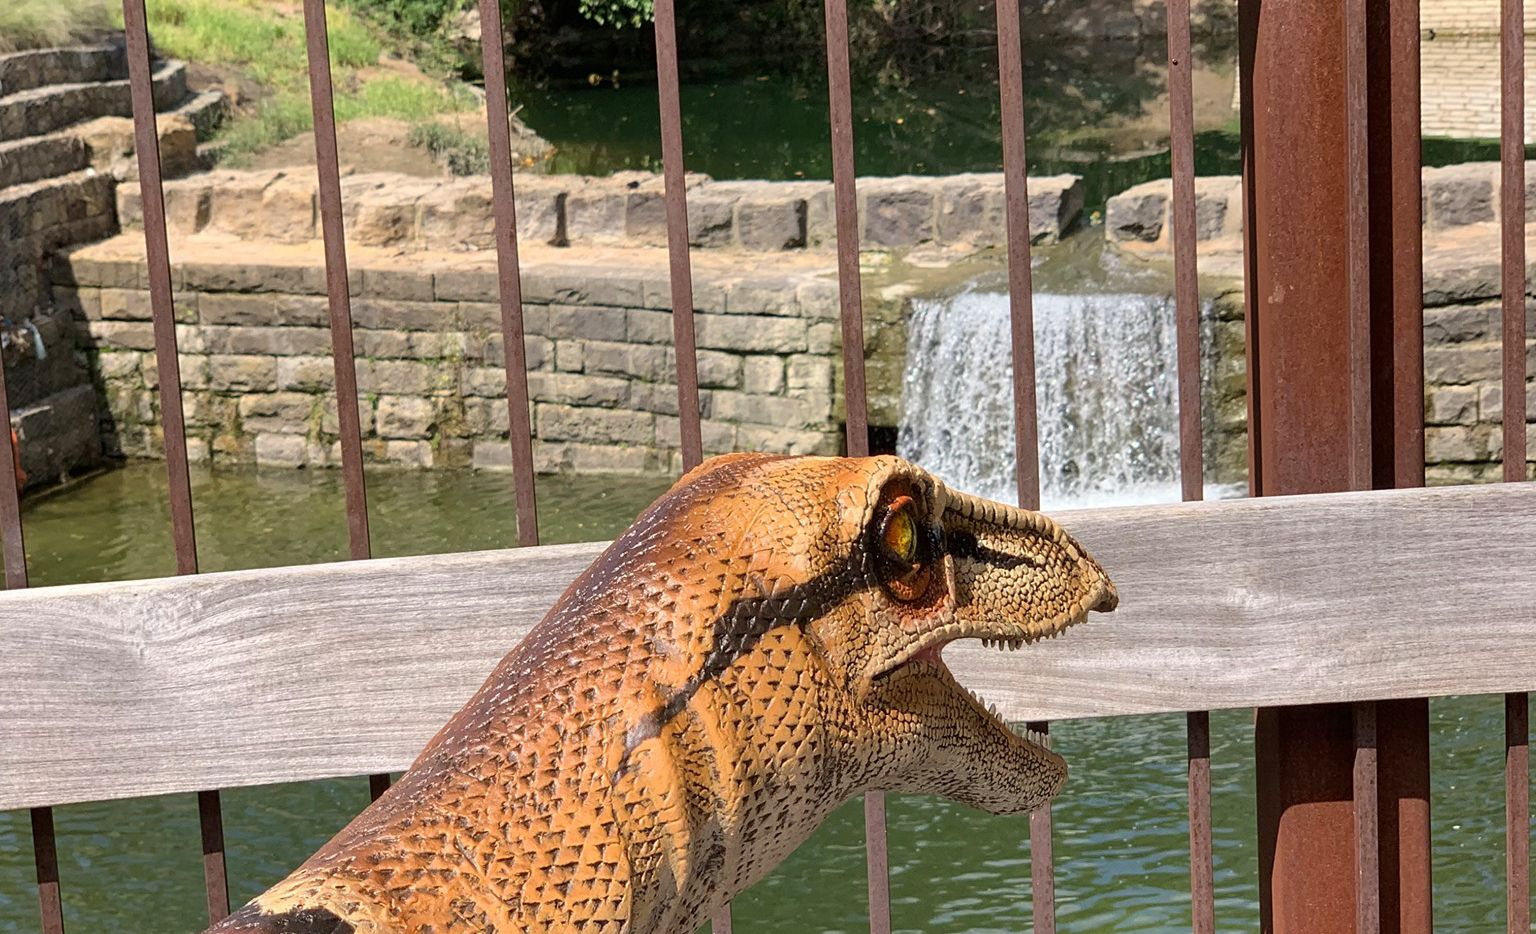 The City of Allen is asking residents to help find Cece, an escaped 53-pound, 205-million-year-old Coelophysis.